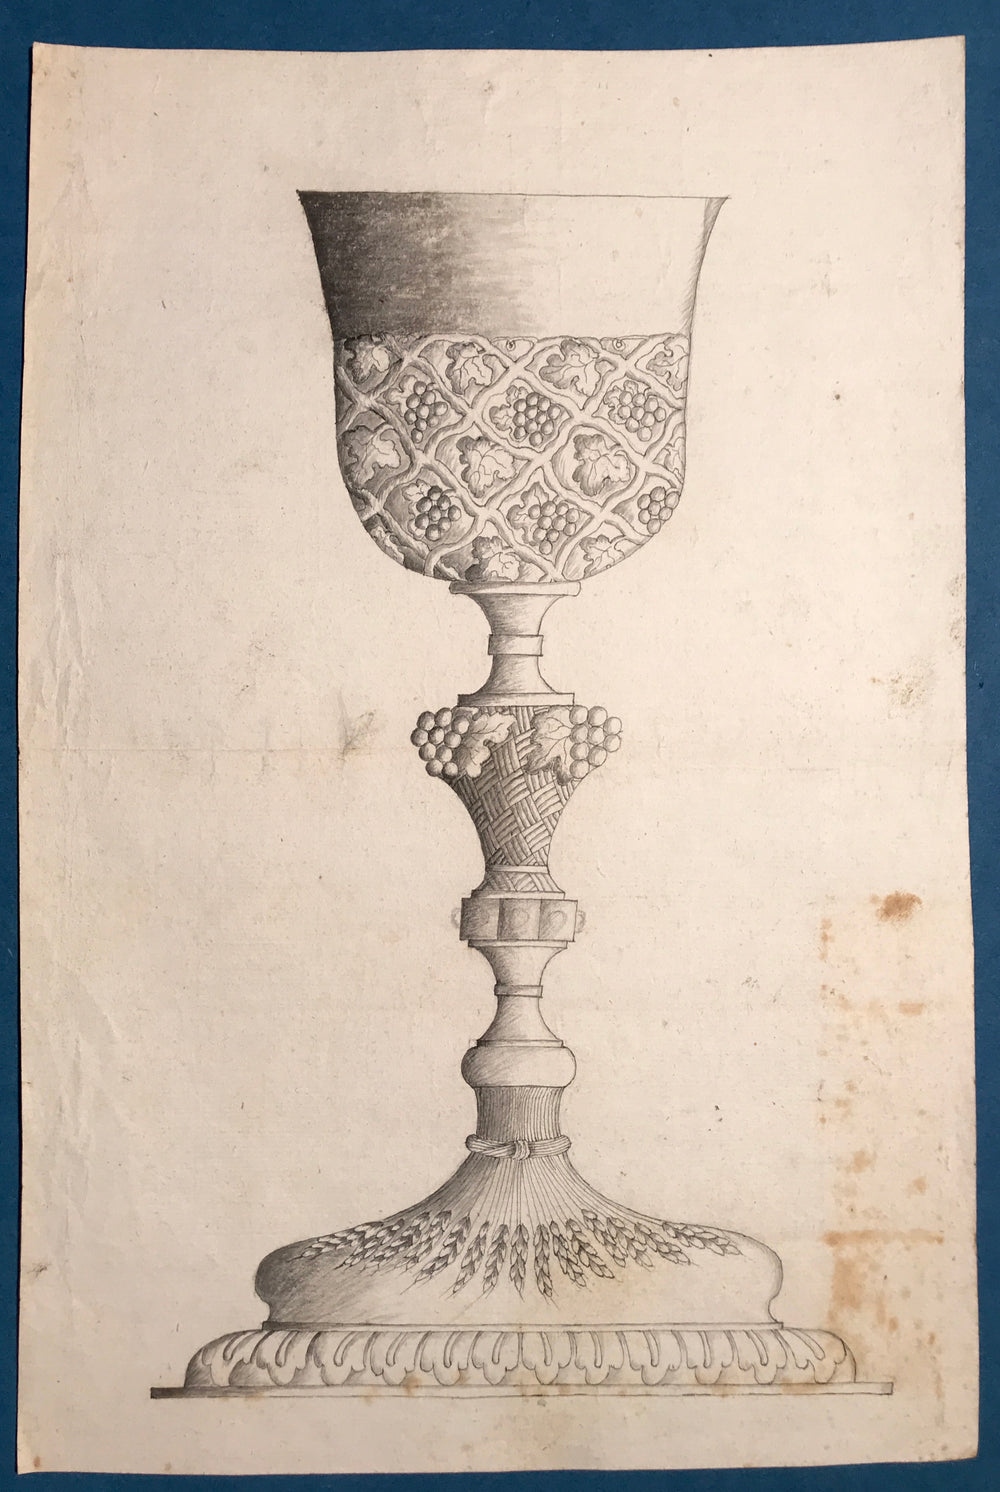 DRAWING PROJECT FOR A CHALICE